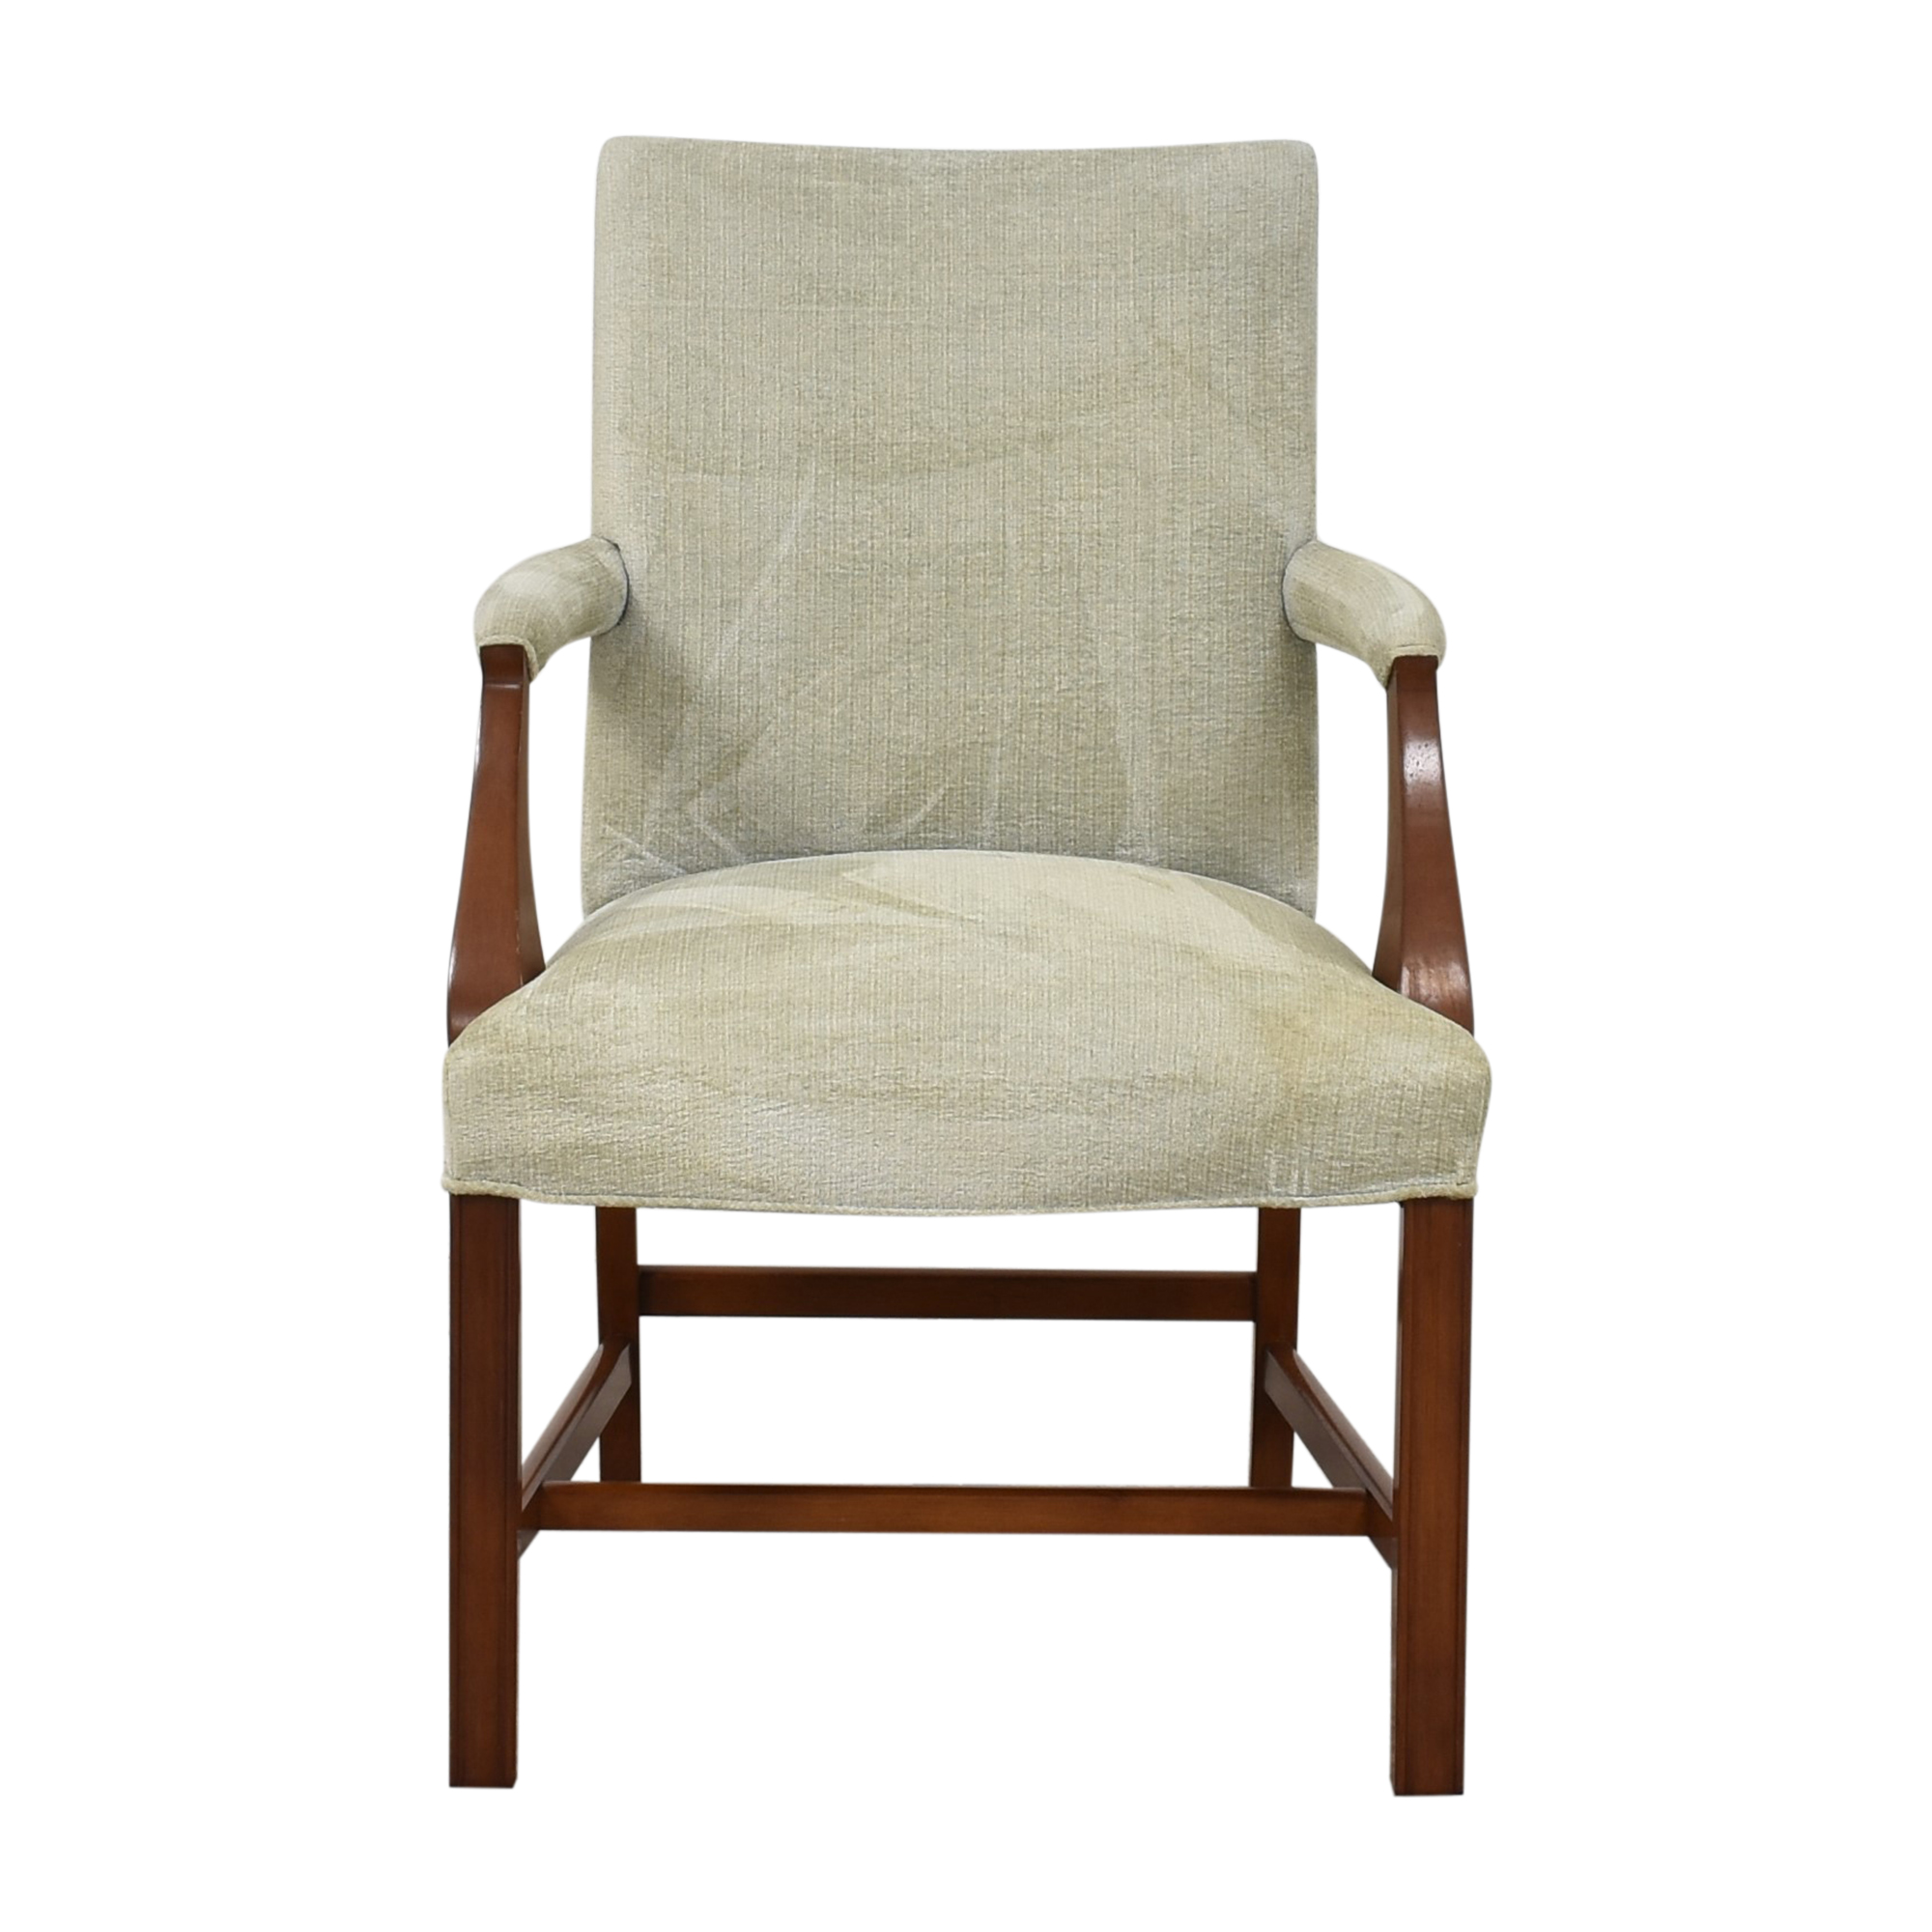 shop Artistic Frame Upholstered Accent Chair Artistic Frame Accent Chairs